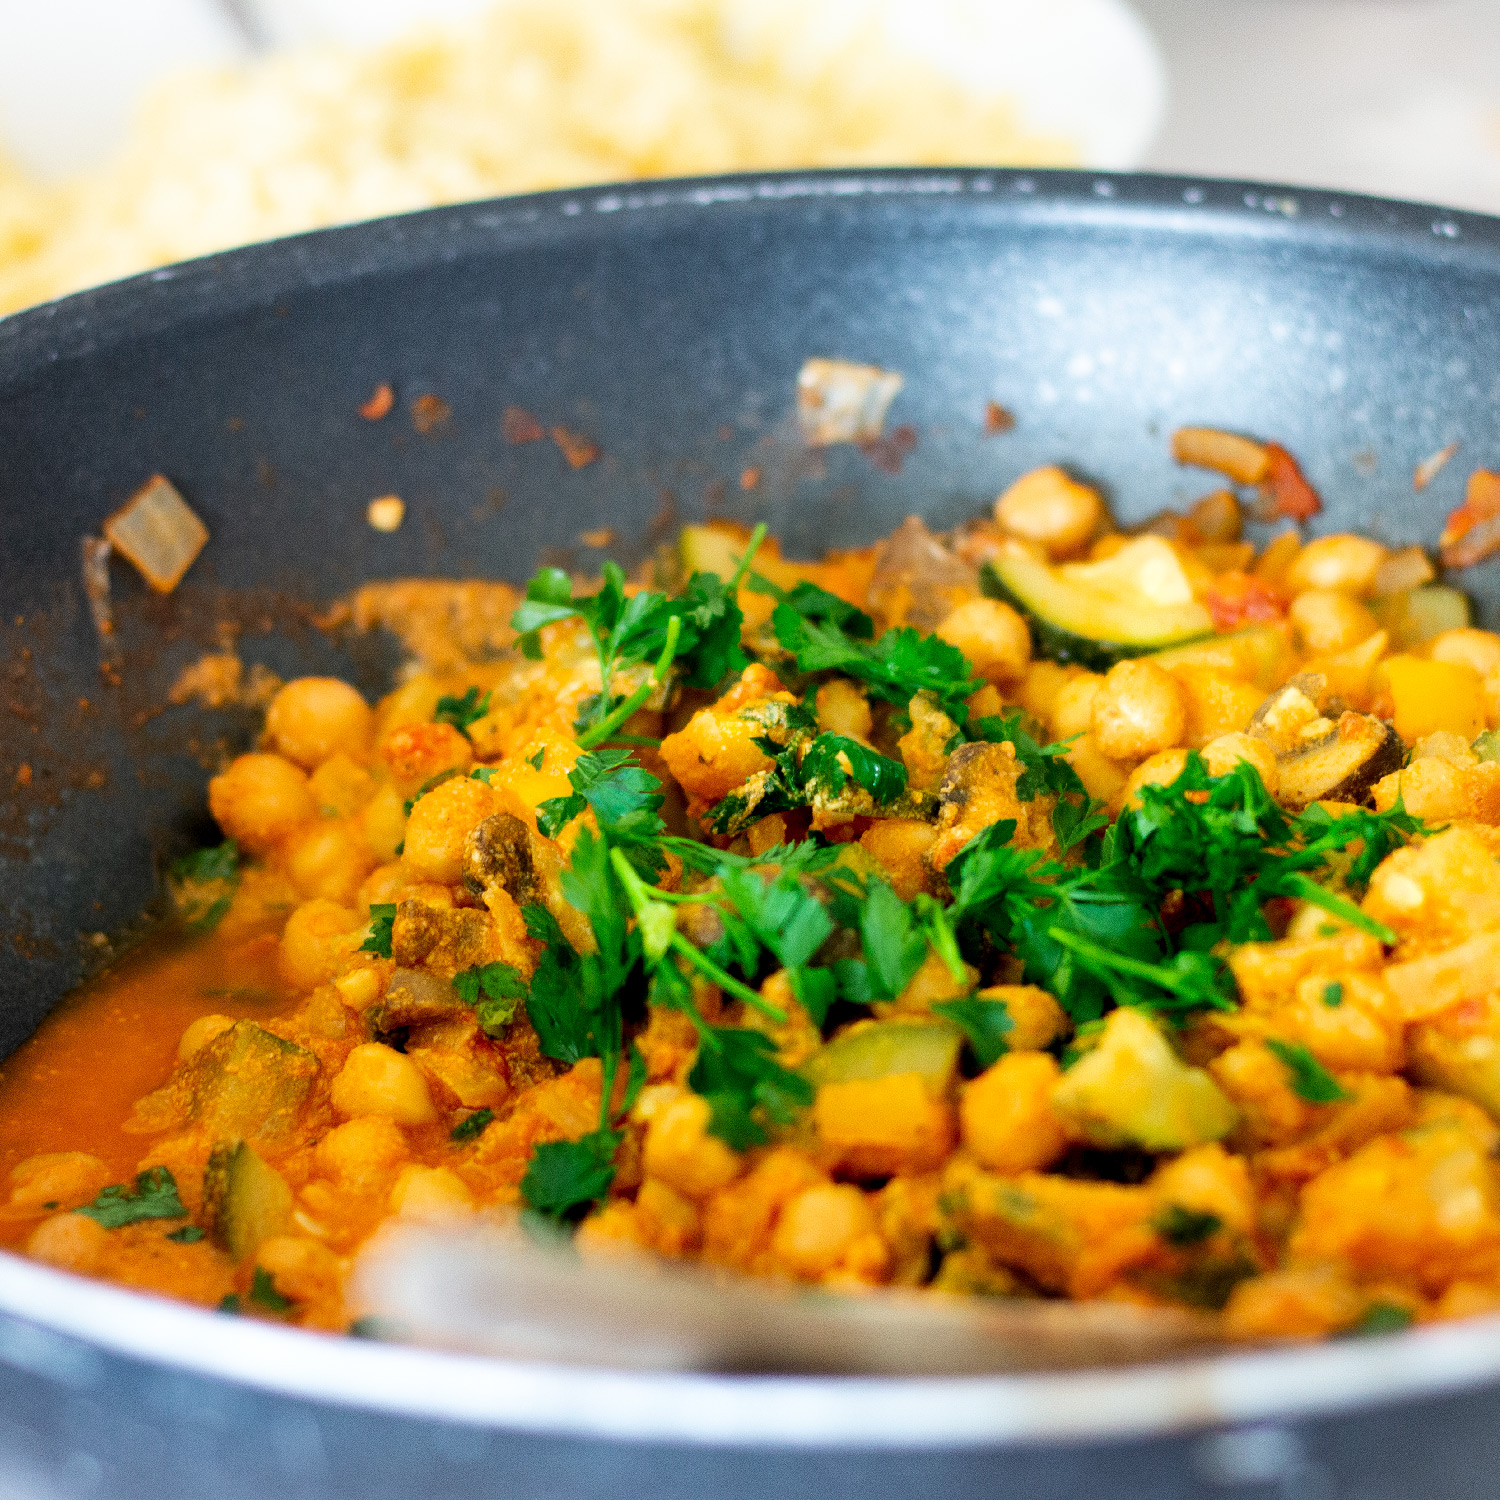 Chickpea Moroccan Stew